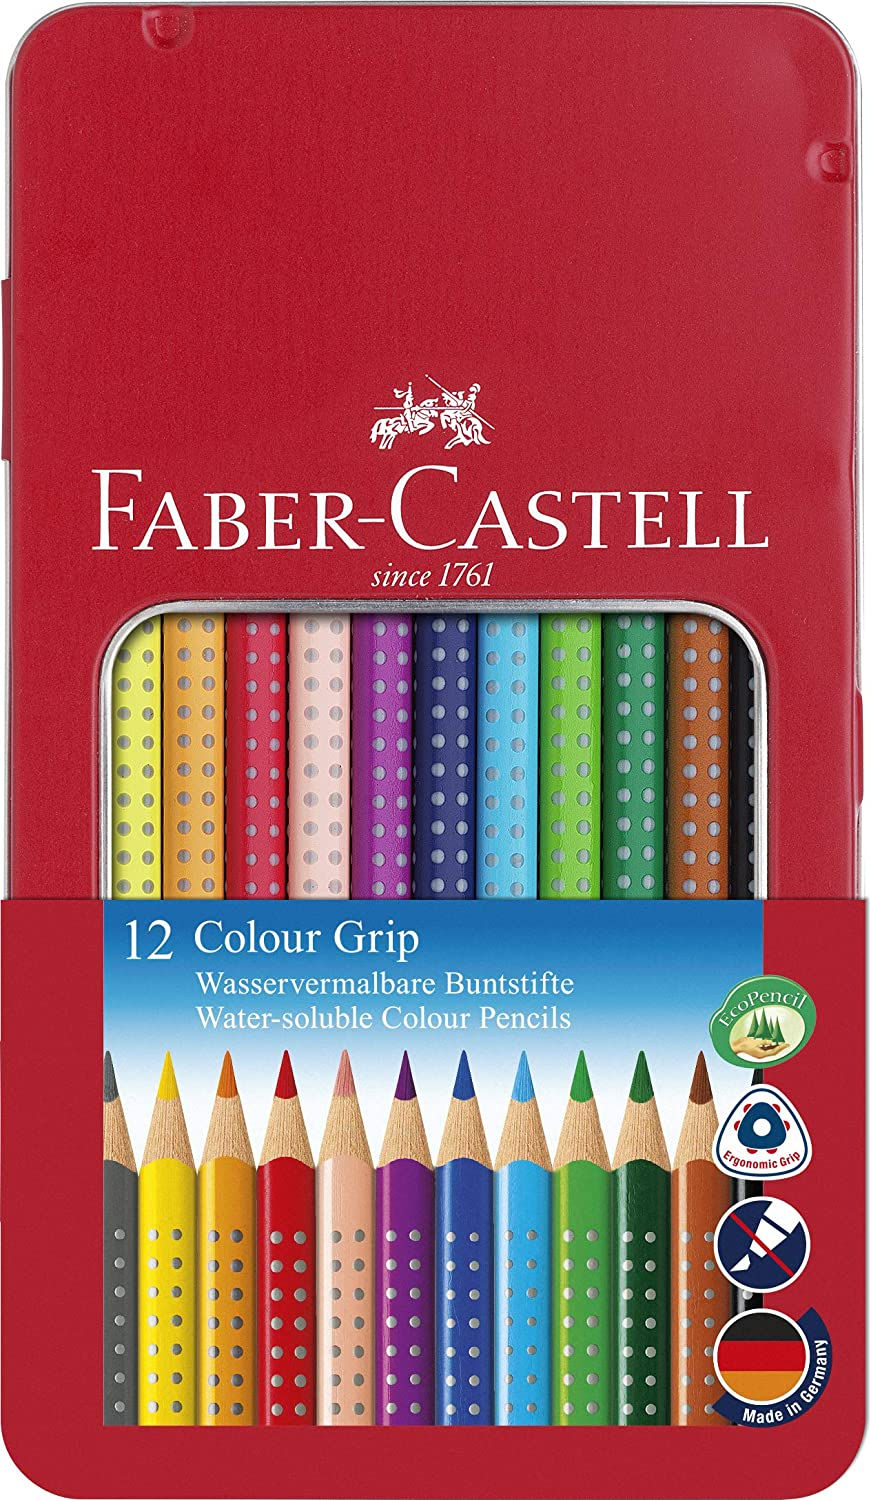 Faber Castell 112413 - Estuche de metal con 12 ecolápices triangulares de colores, agarre Grip, acuarelables, lápices escolares, multicolor: Amazon.es: Oficina y papelería